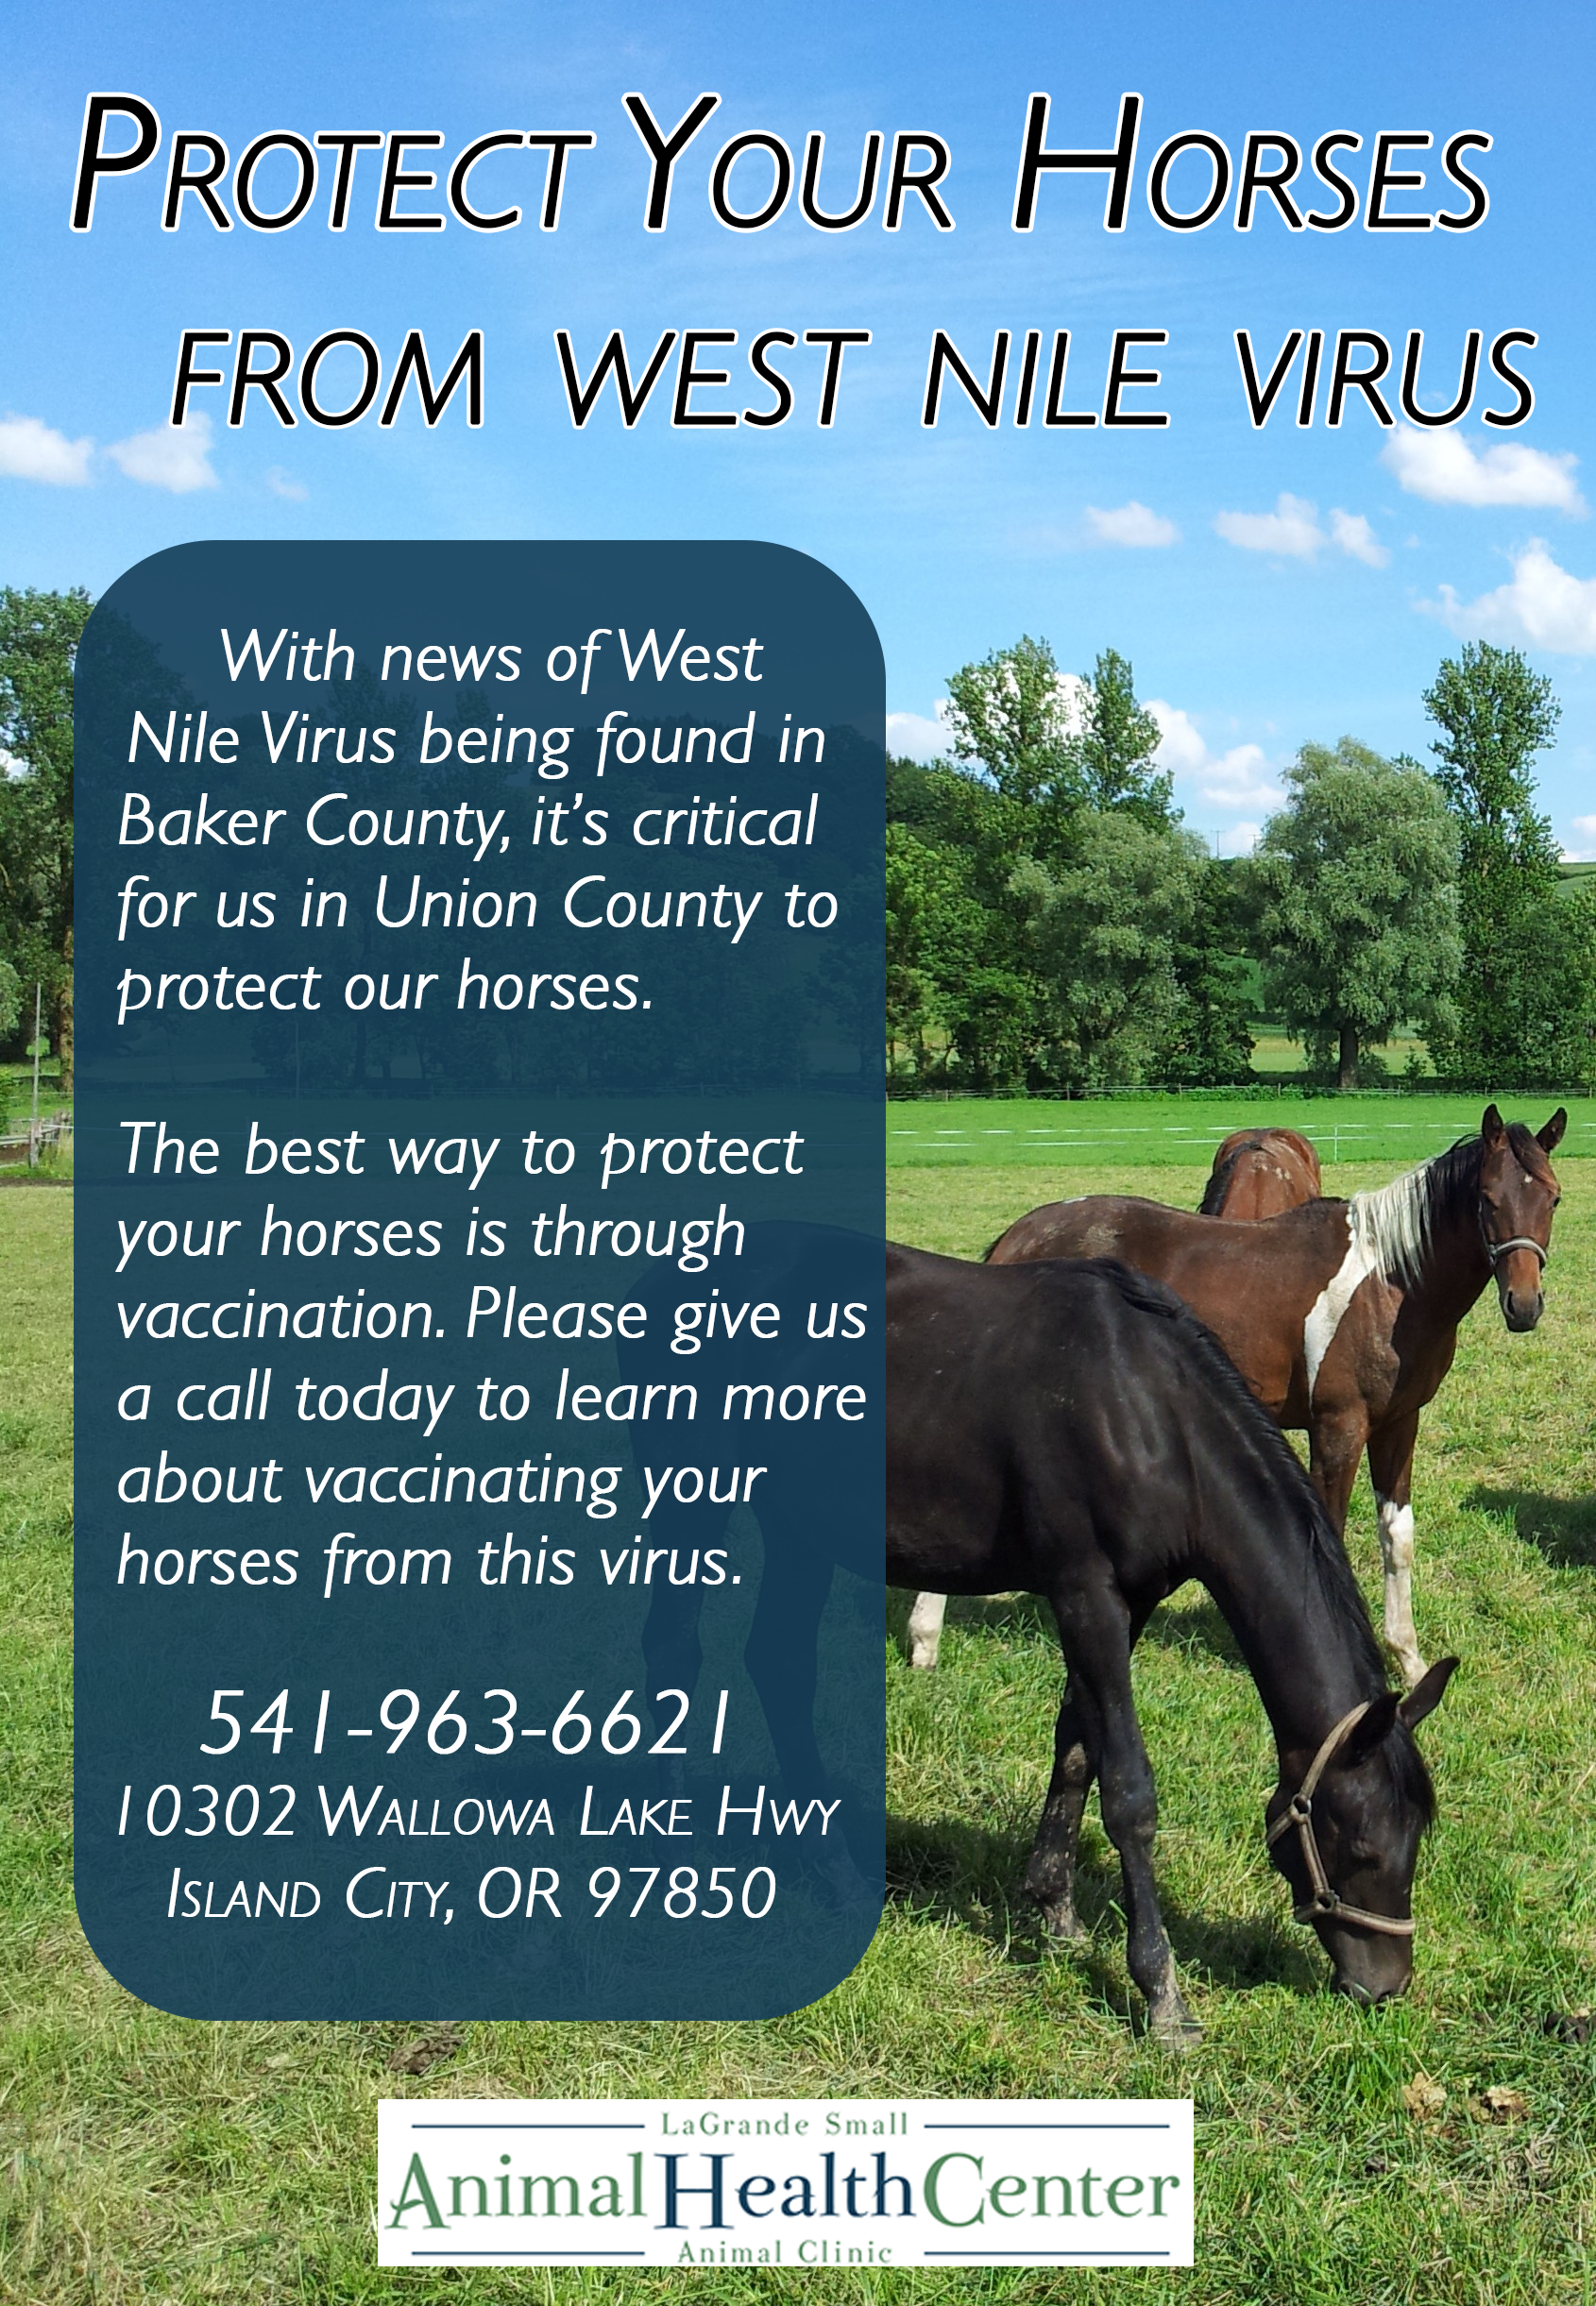 Protect Your Horses from West Nile